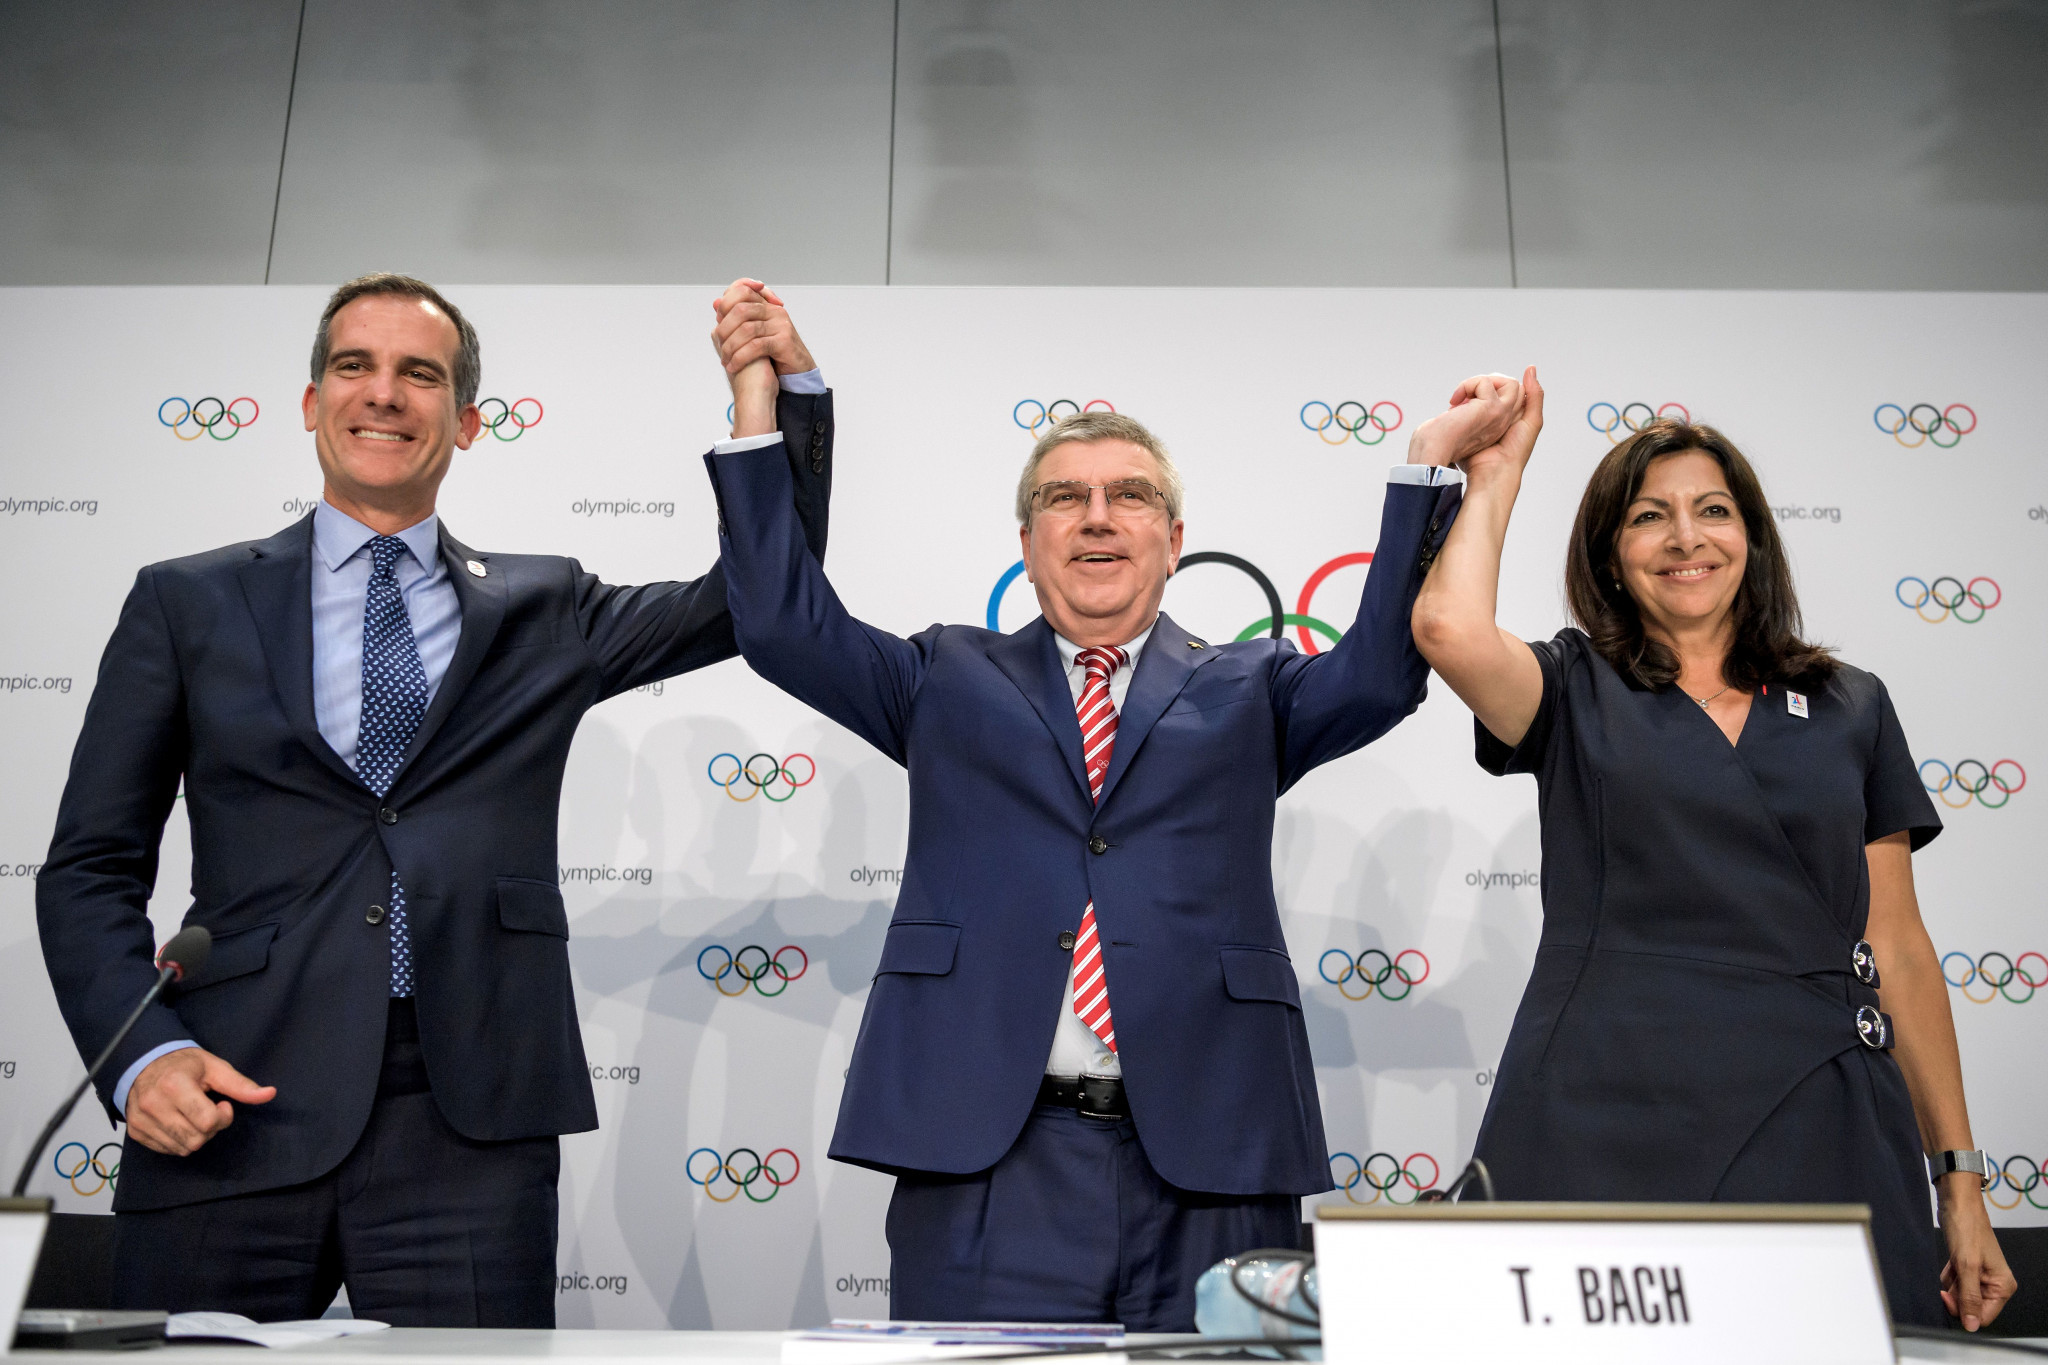 Thomas Bach pictured with Los Angeles Mayor Eric Garcetti, left, and Paris counterpart Anne Hidalgo, right, are both set to be in Lima to confirm their cities being awarded the Olympic and Paralympic Games in 2024 and 2028 ©Getty Images